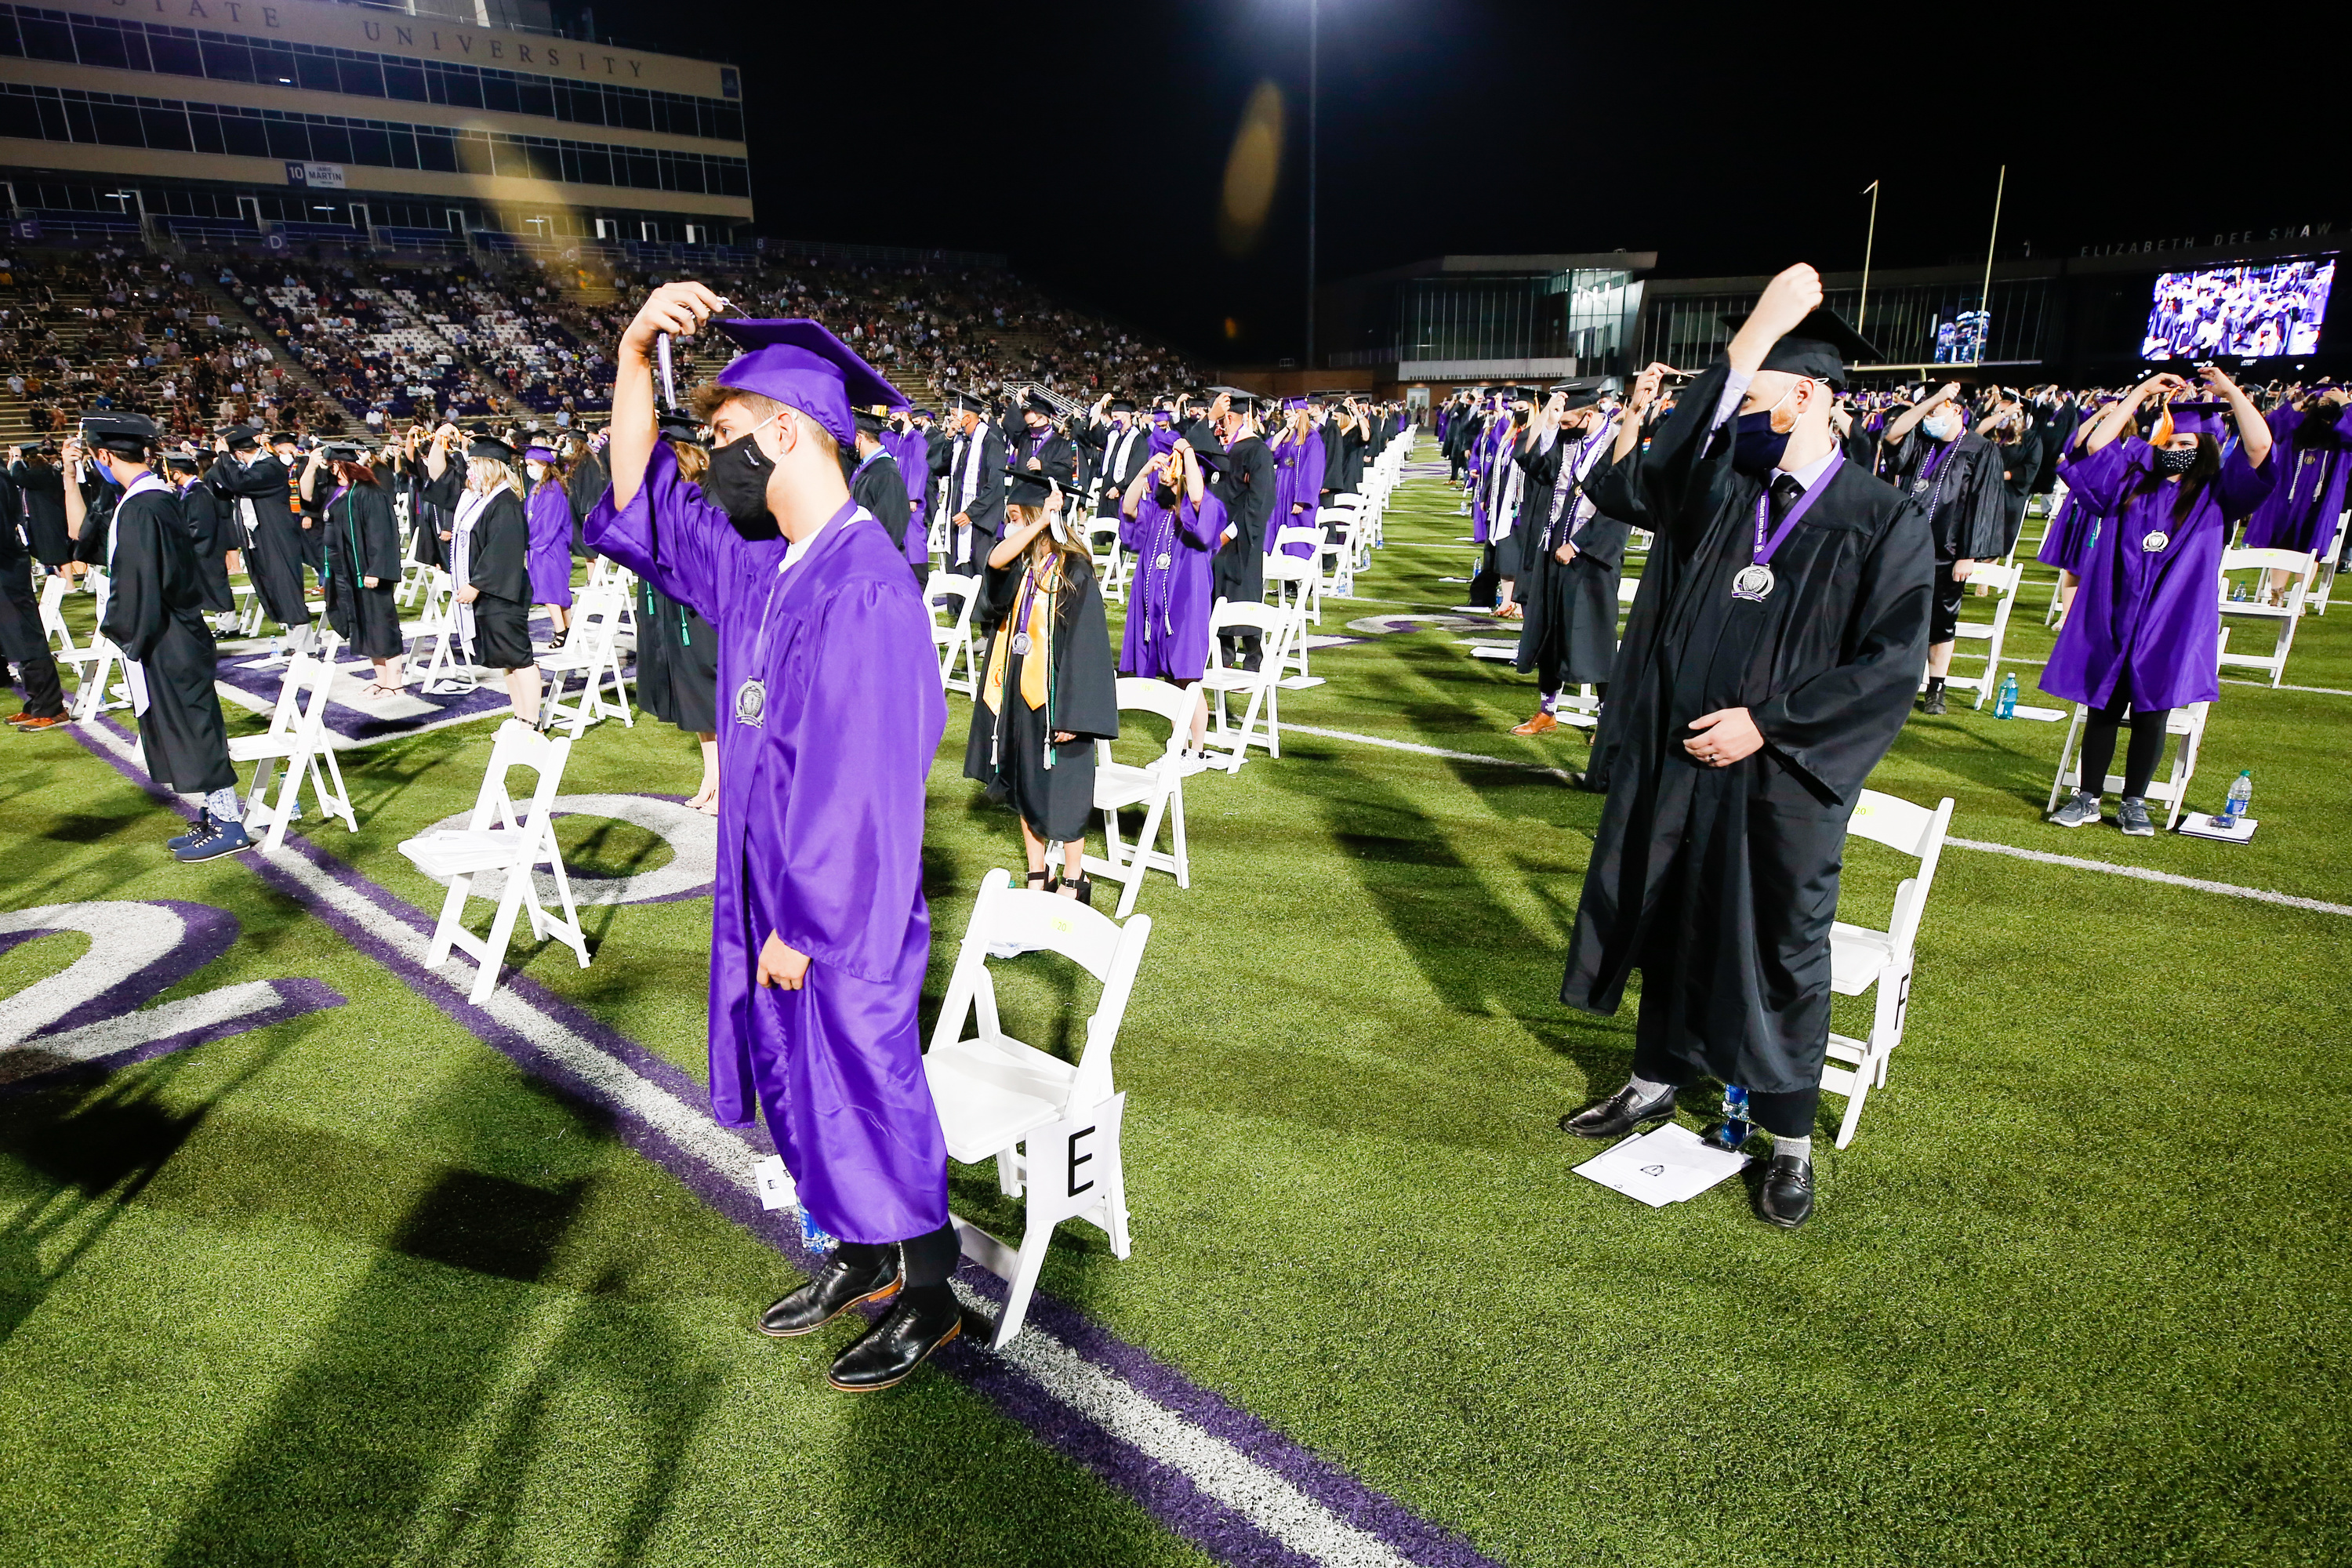 Students turn their tassels during the spring and summer graduation ceremonies at Weber State University on Aug. 29, 2020.